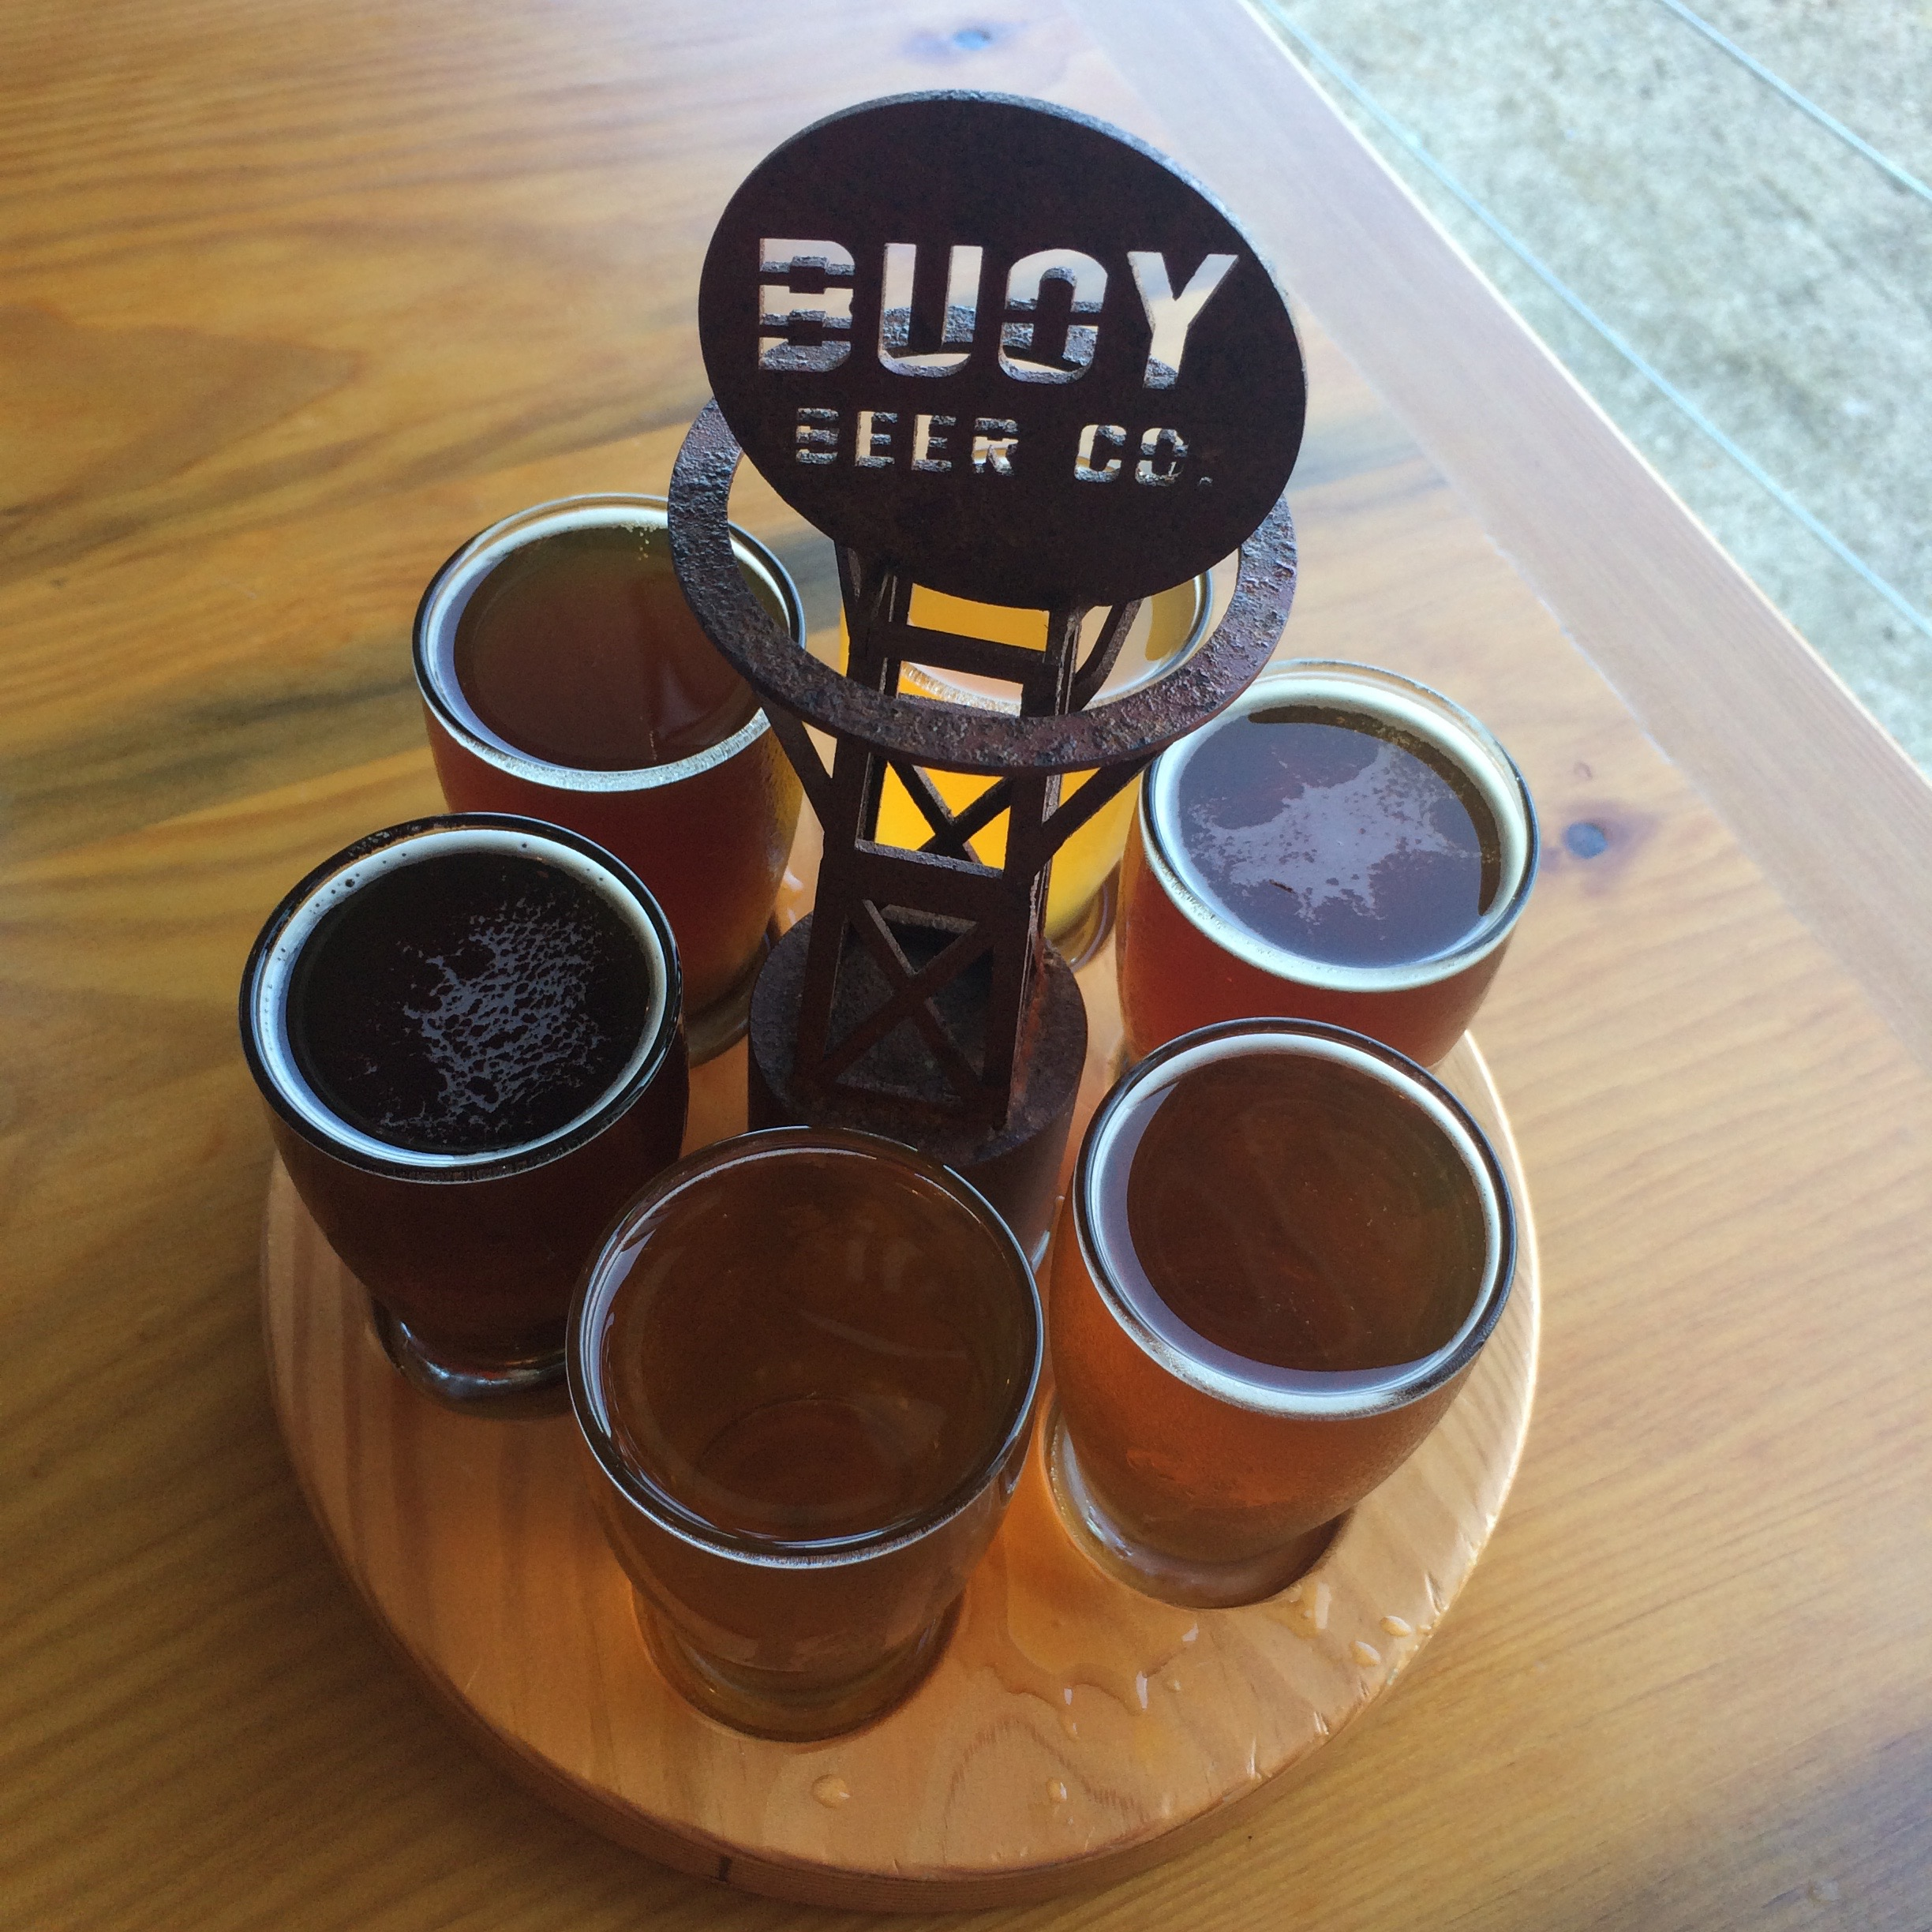 The cute yet tasty Buoy Beer Co. taster tray.